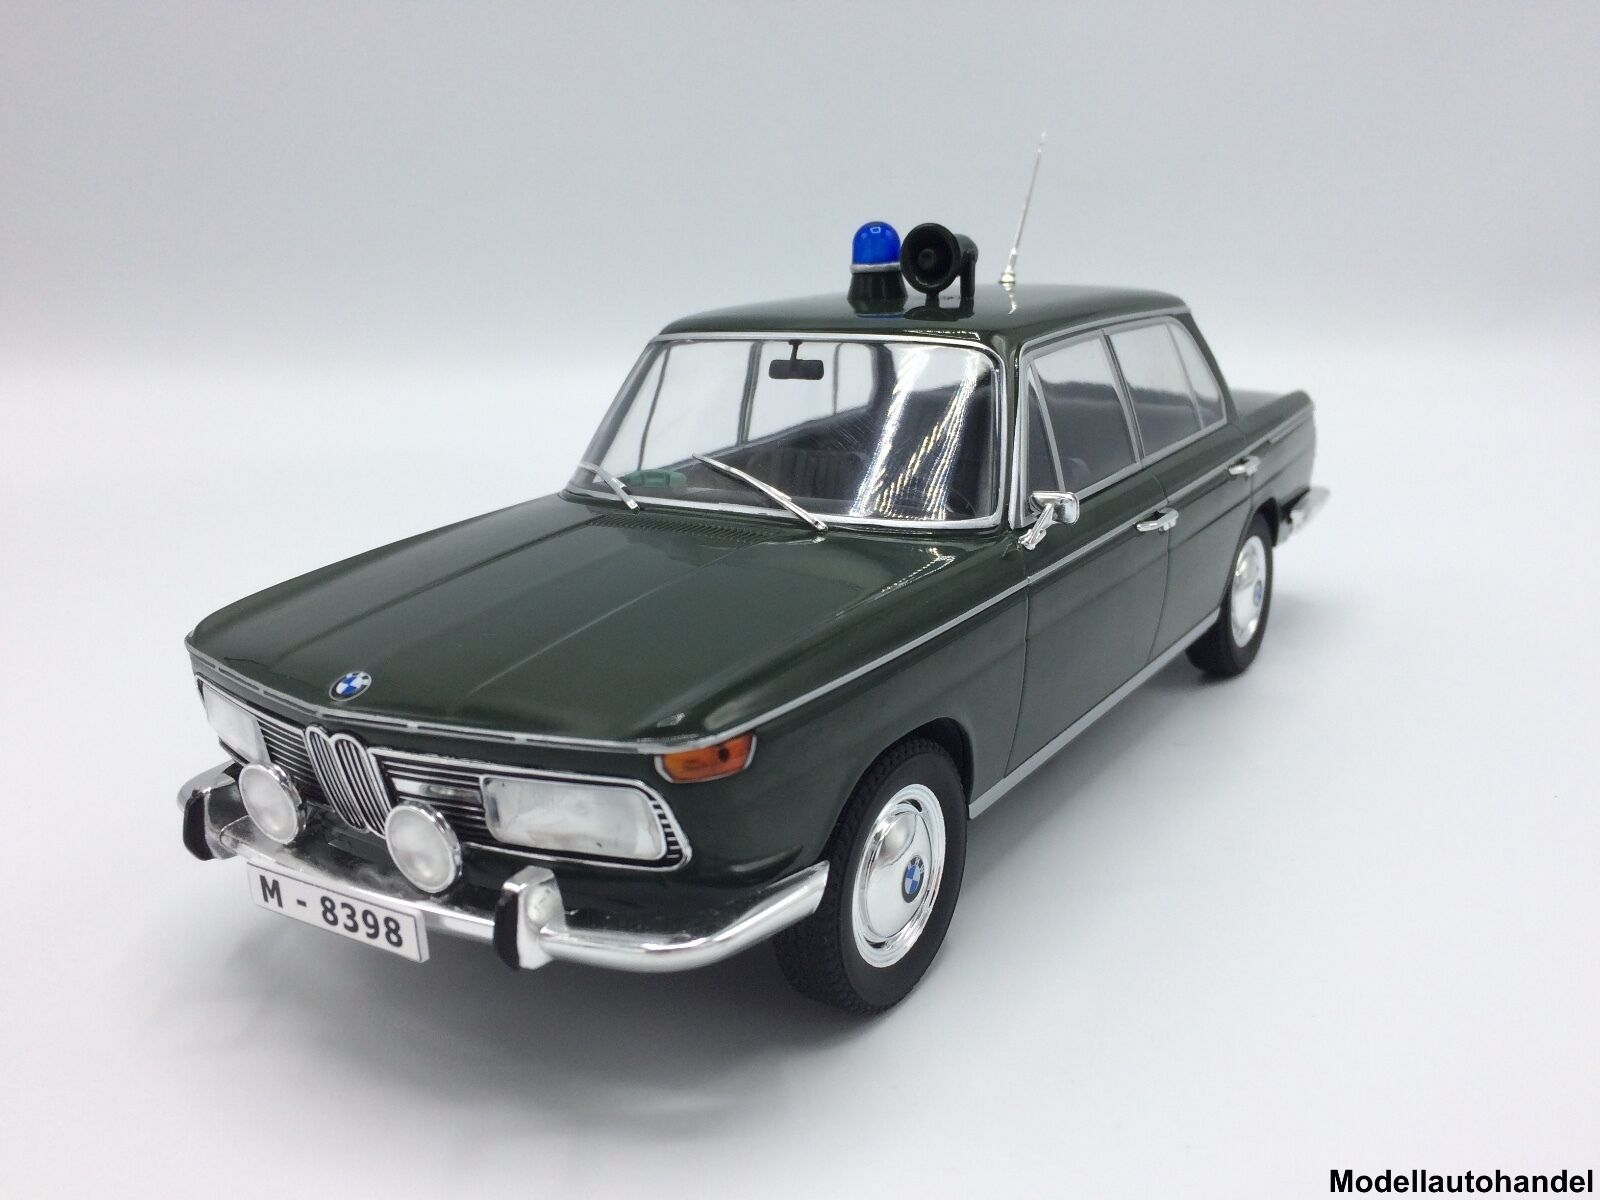 BMW 2000 TI (type 120) Police 1966 - 1 18 MCG    NEW